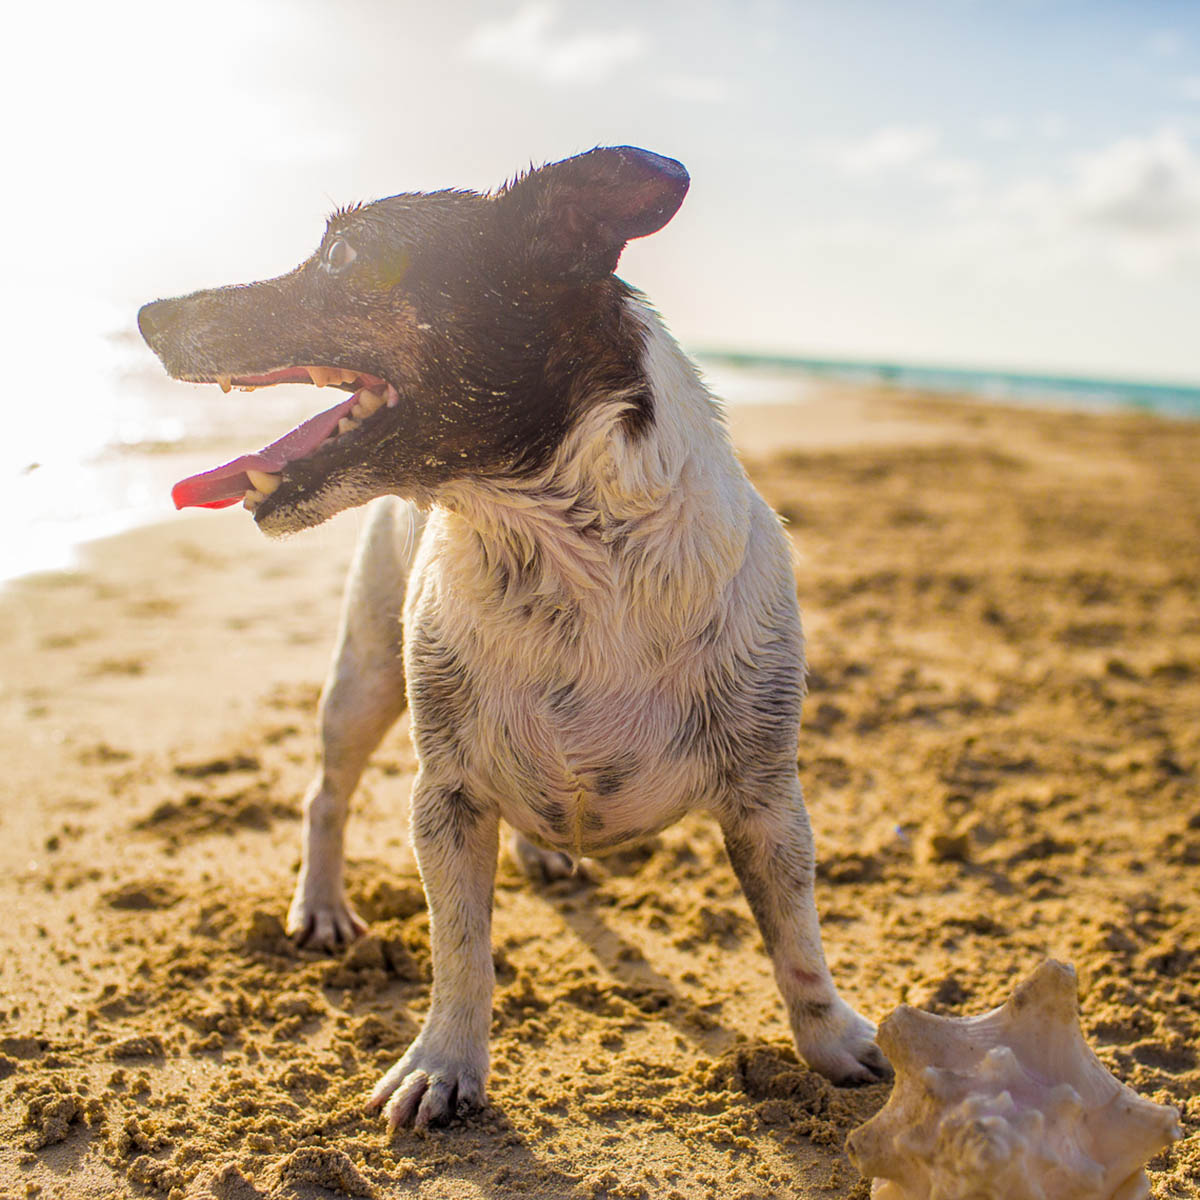 Dog photos by eyeSpice Photography, aboard Sail Beluga, Turks and Caicos Islands. Notes from the Pack, July 2016.